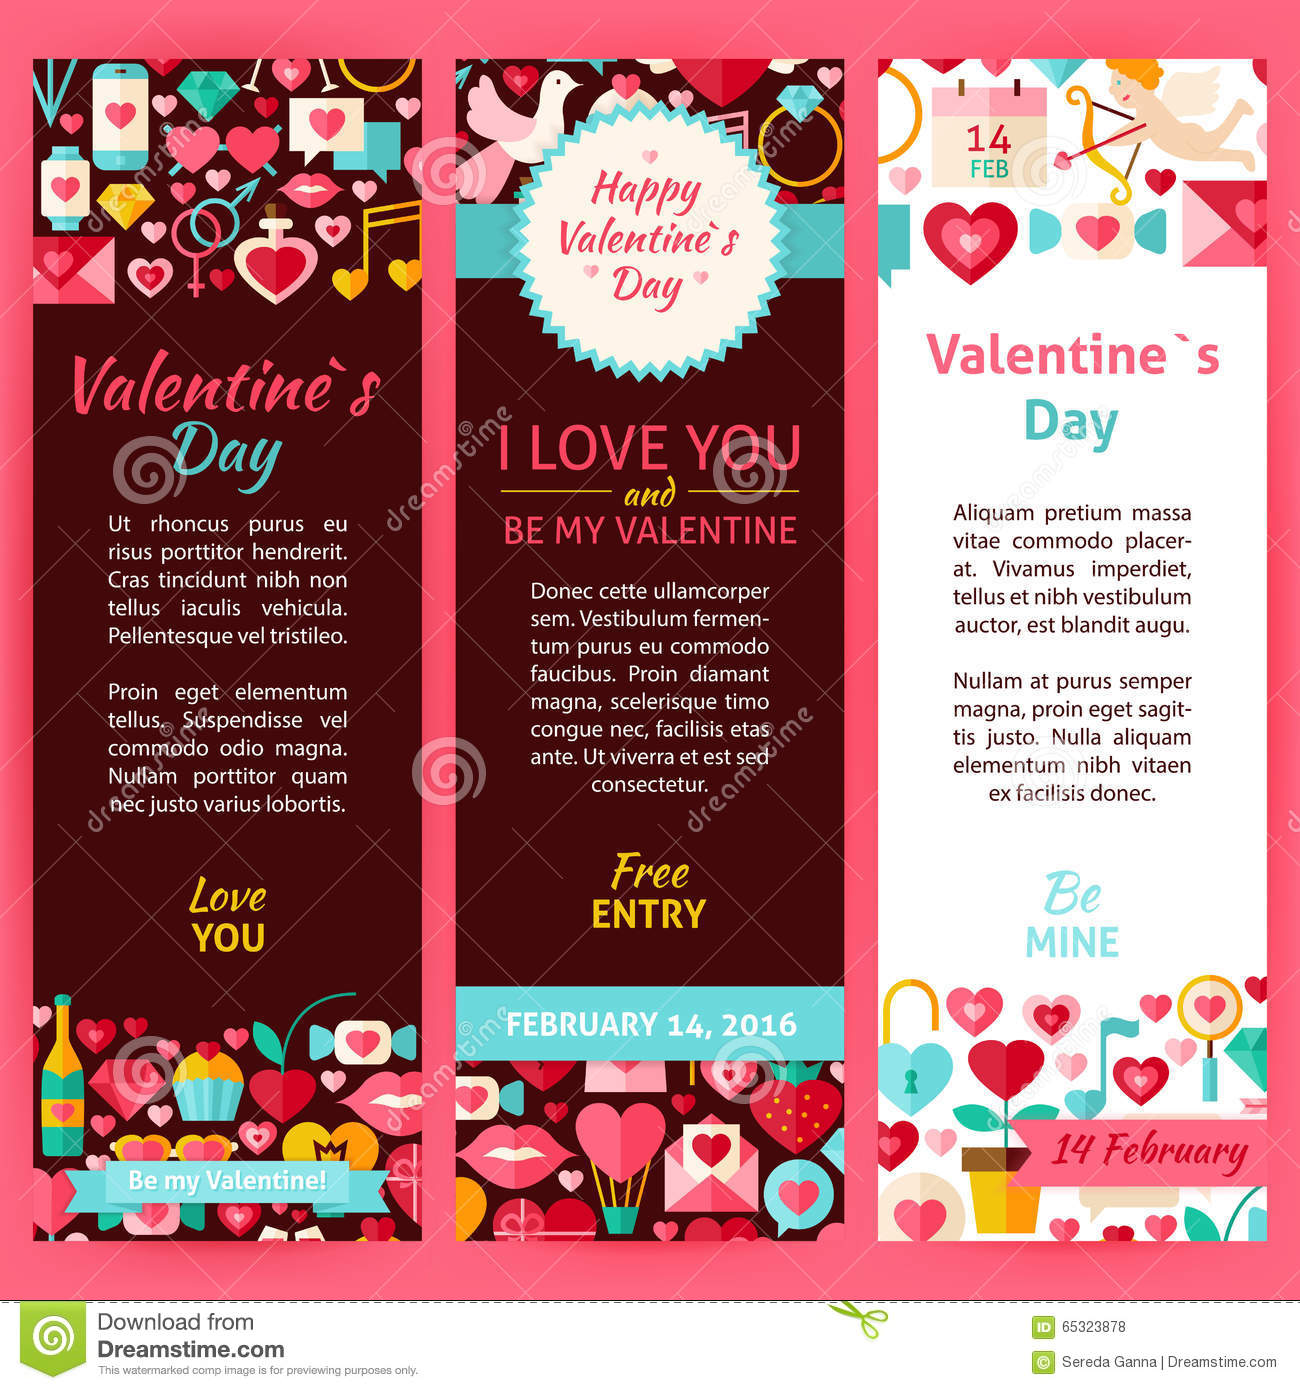 Valentines Day Party Invitation Flyer Royalty Free Stock Image